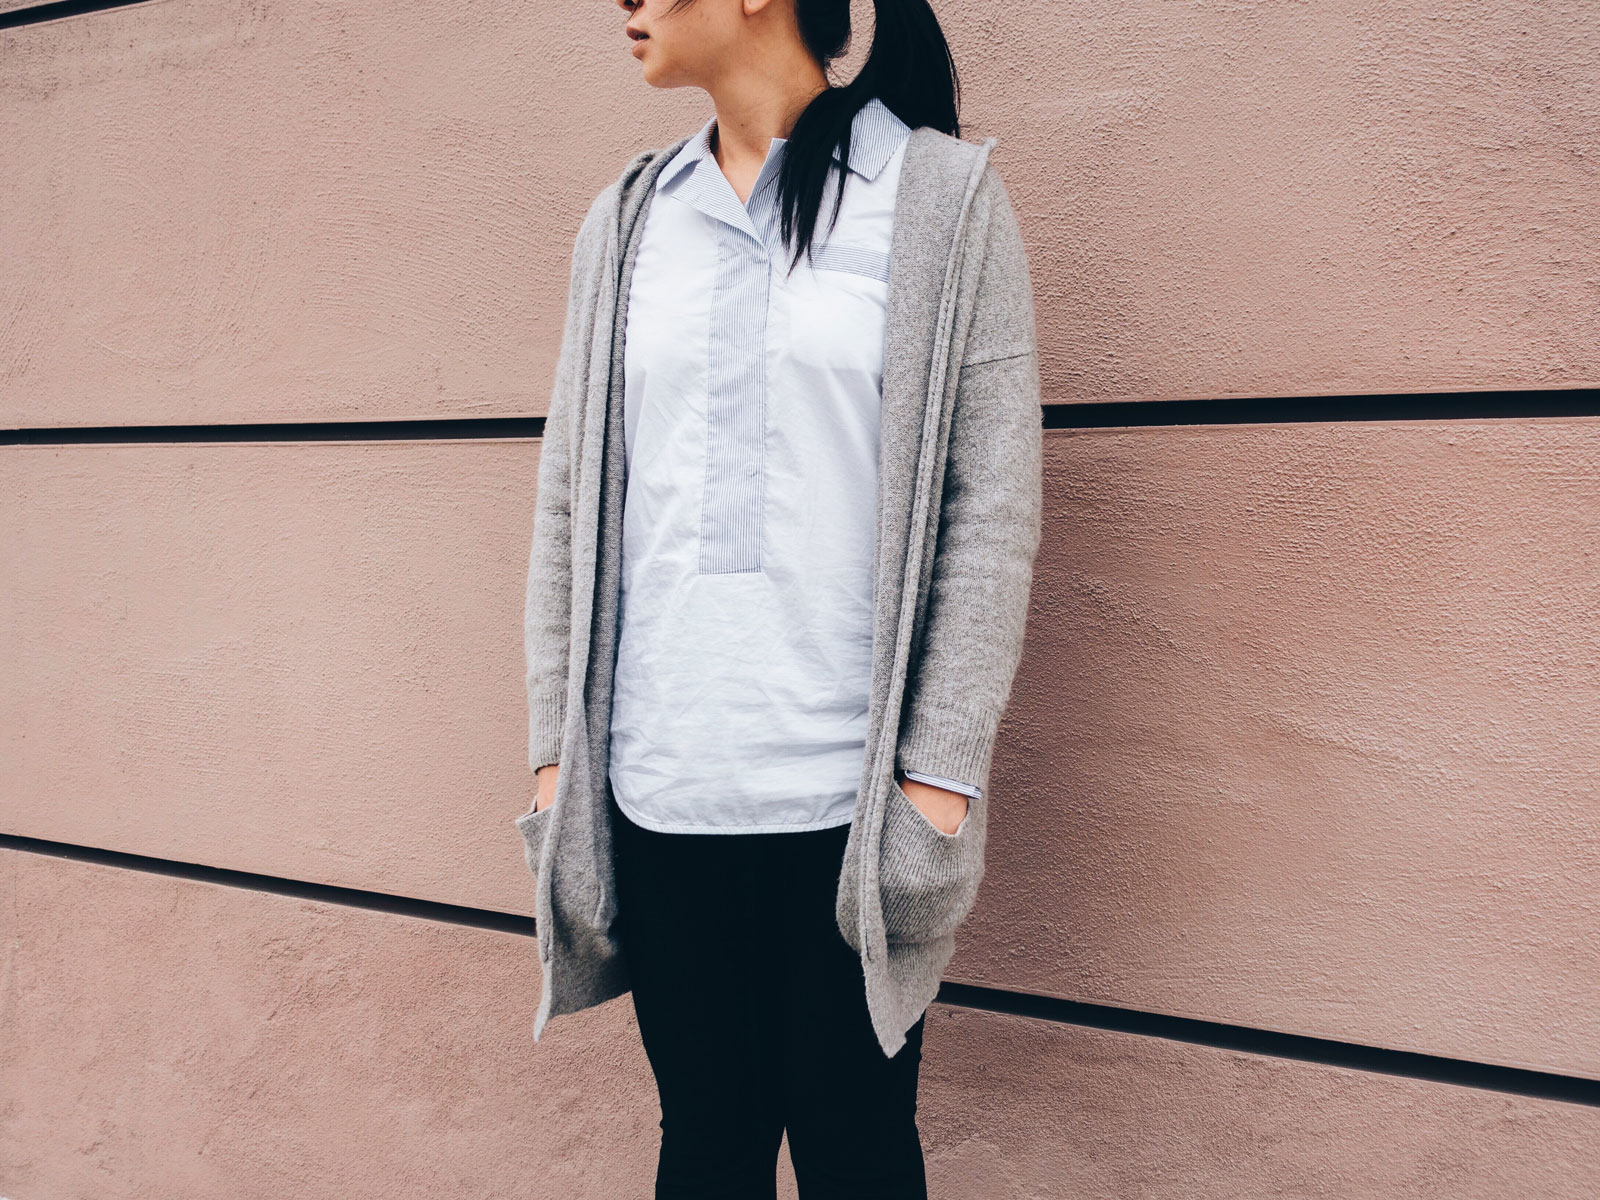 Grey hooded long cardigan (http://shopstyle.it/l/eFy2) | White and blue contrast popover shirt (http://shopstyle.it/l/eFxL) Black legging pants (http://shopstyle.it/l/eFxX) | Grey lace heels (http://shopstyle.it/l/eFx3) See the full look at www.shoppingmycloset.com